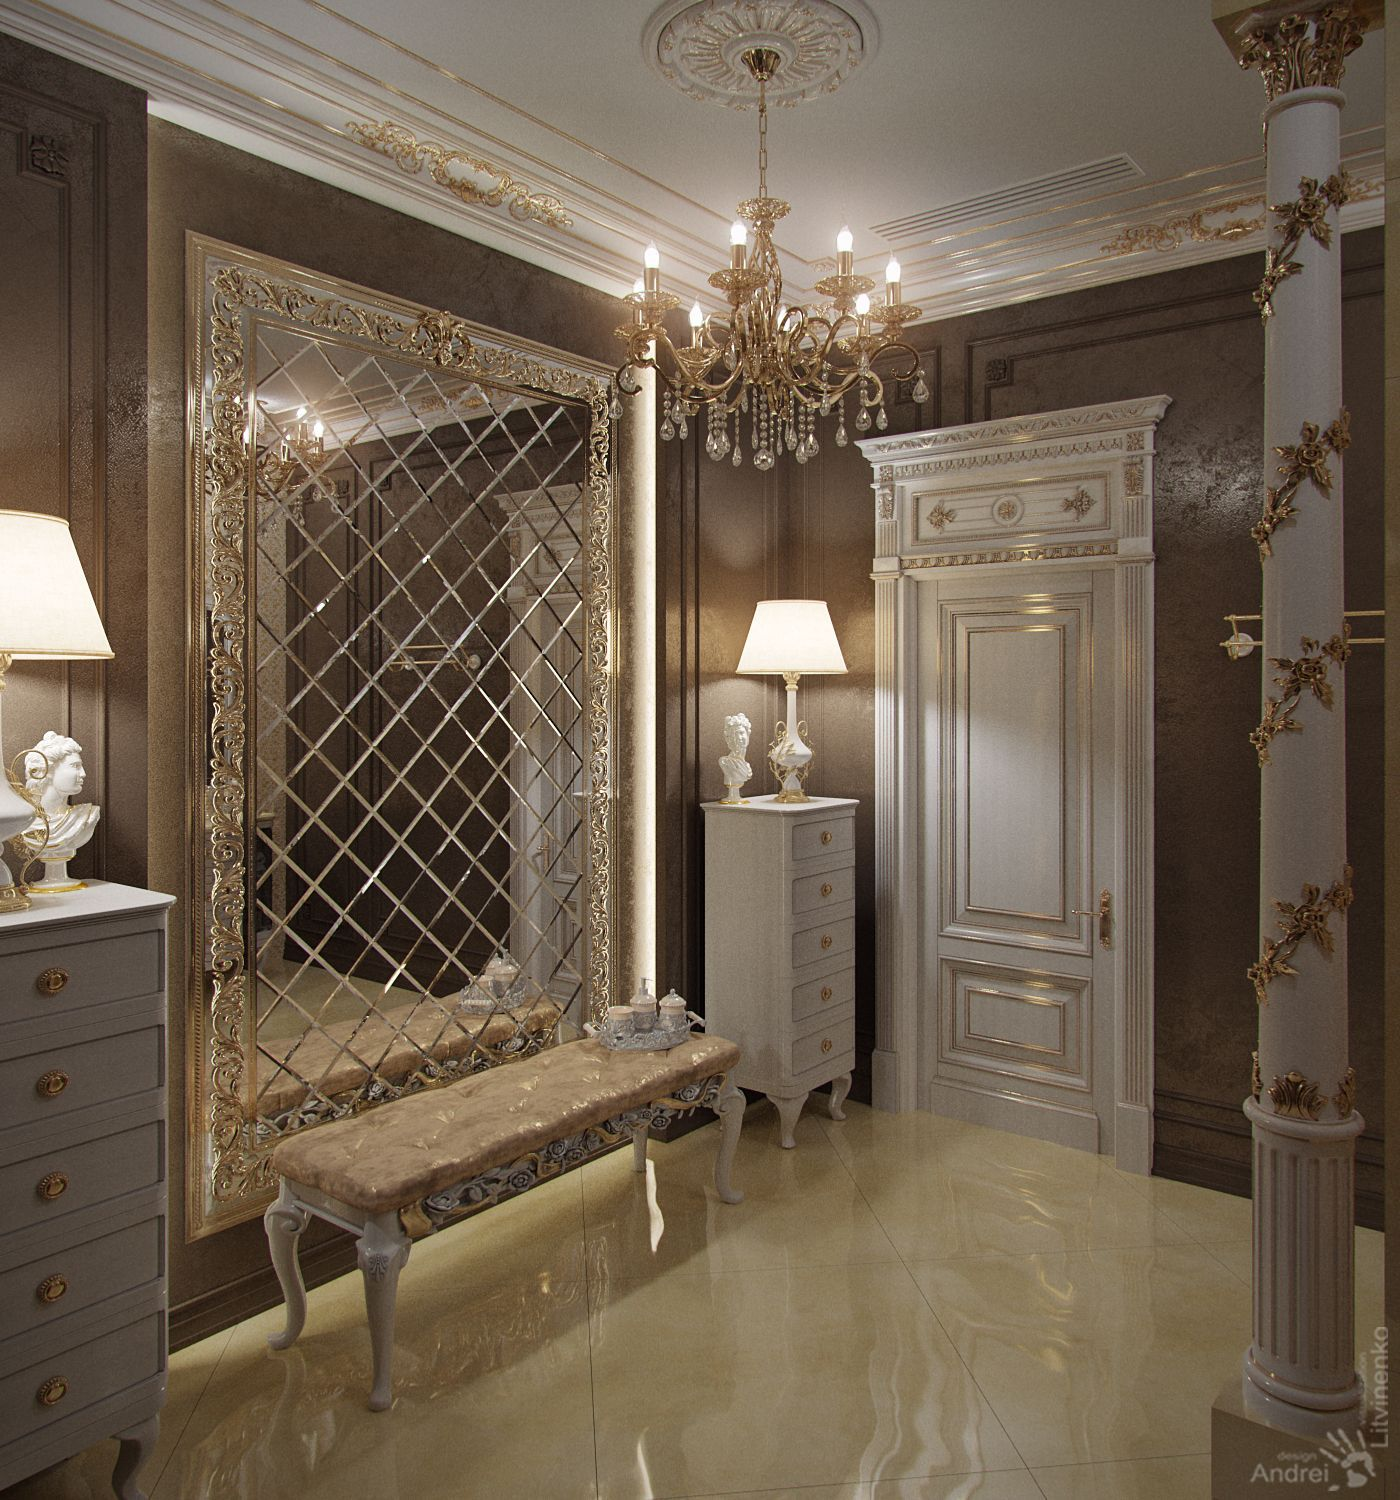 Enlarge Your Space with an Oversized Mirror large walll decor ideas